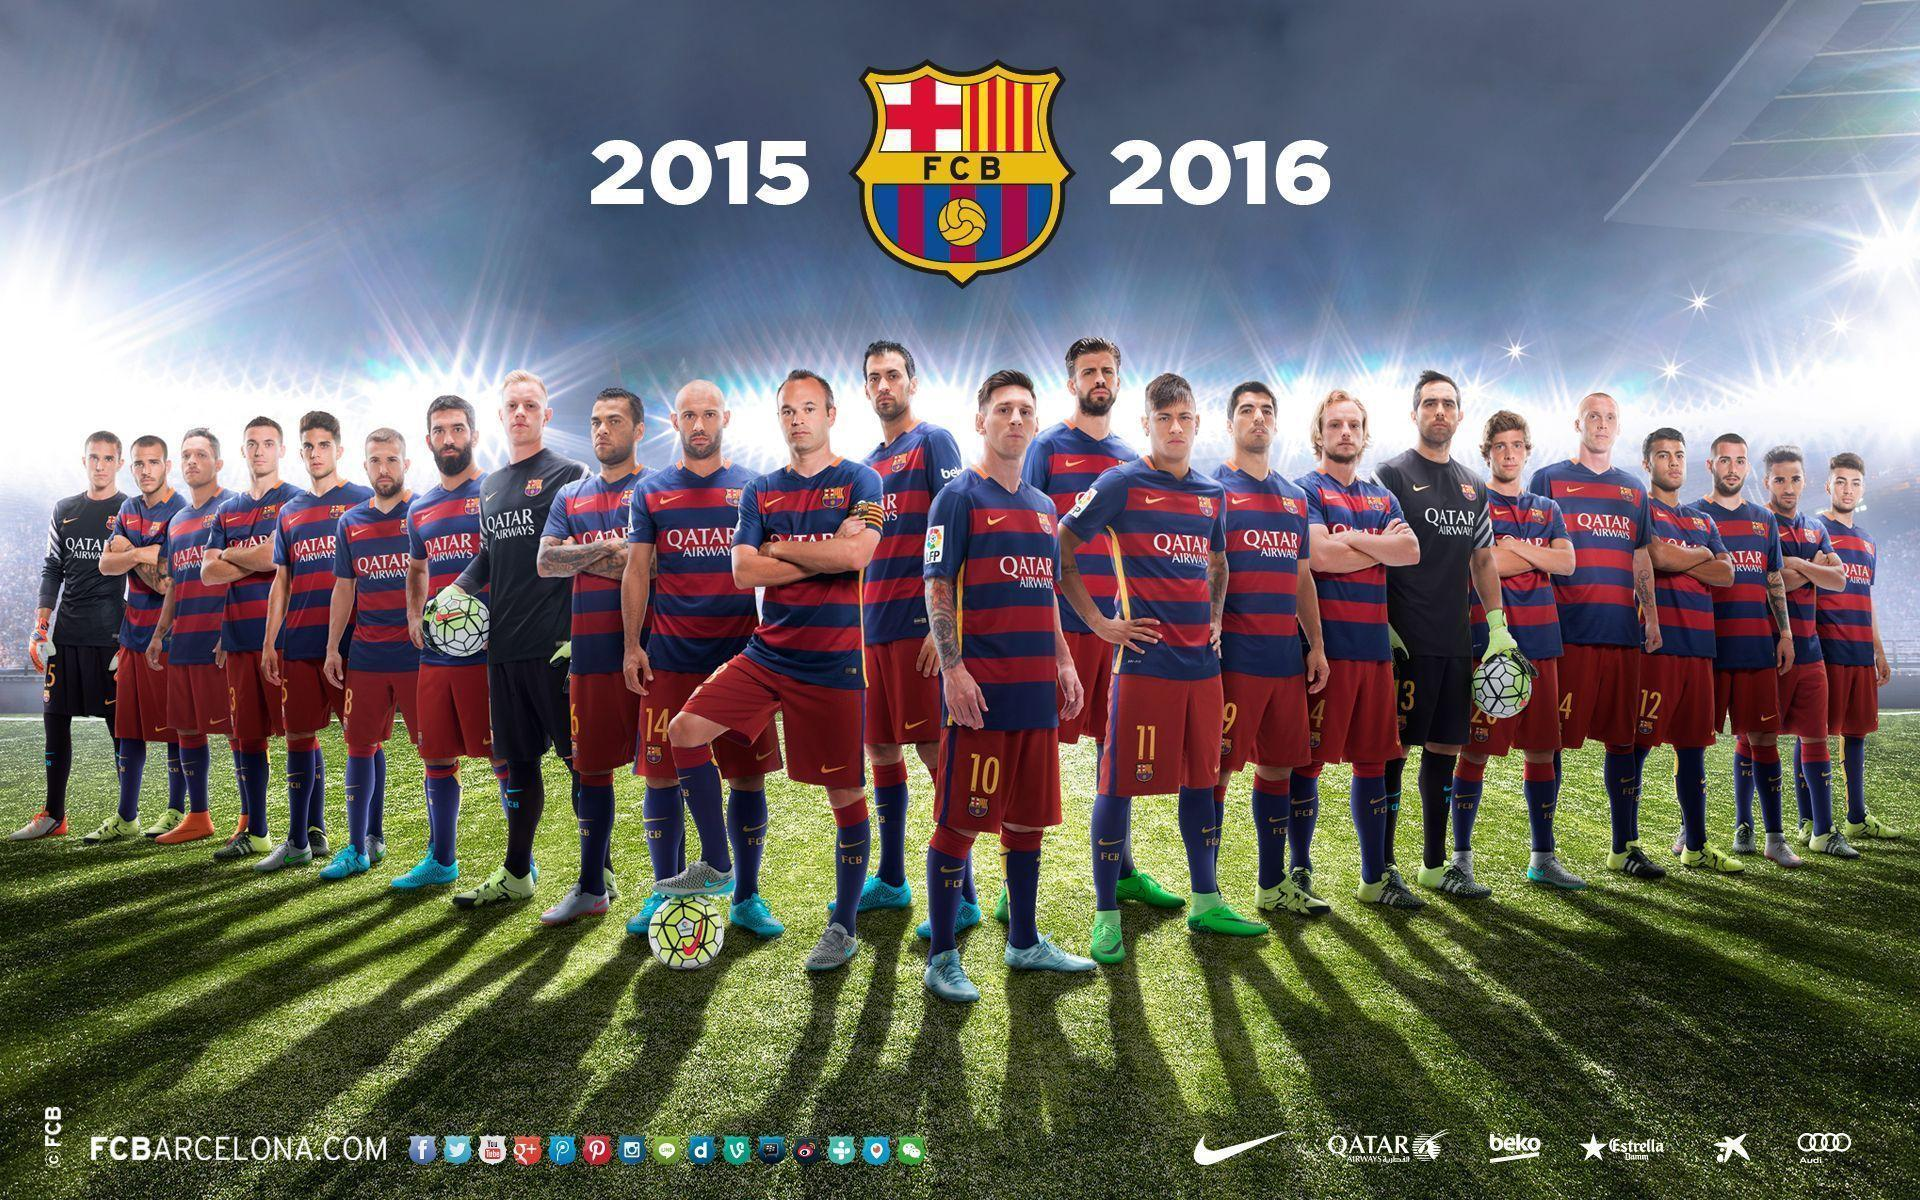 FC Barcelona Wallpapers 2016 1920x1200